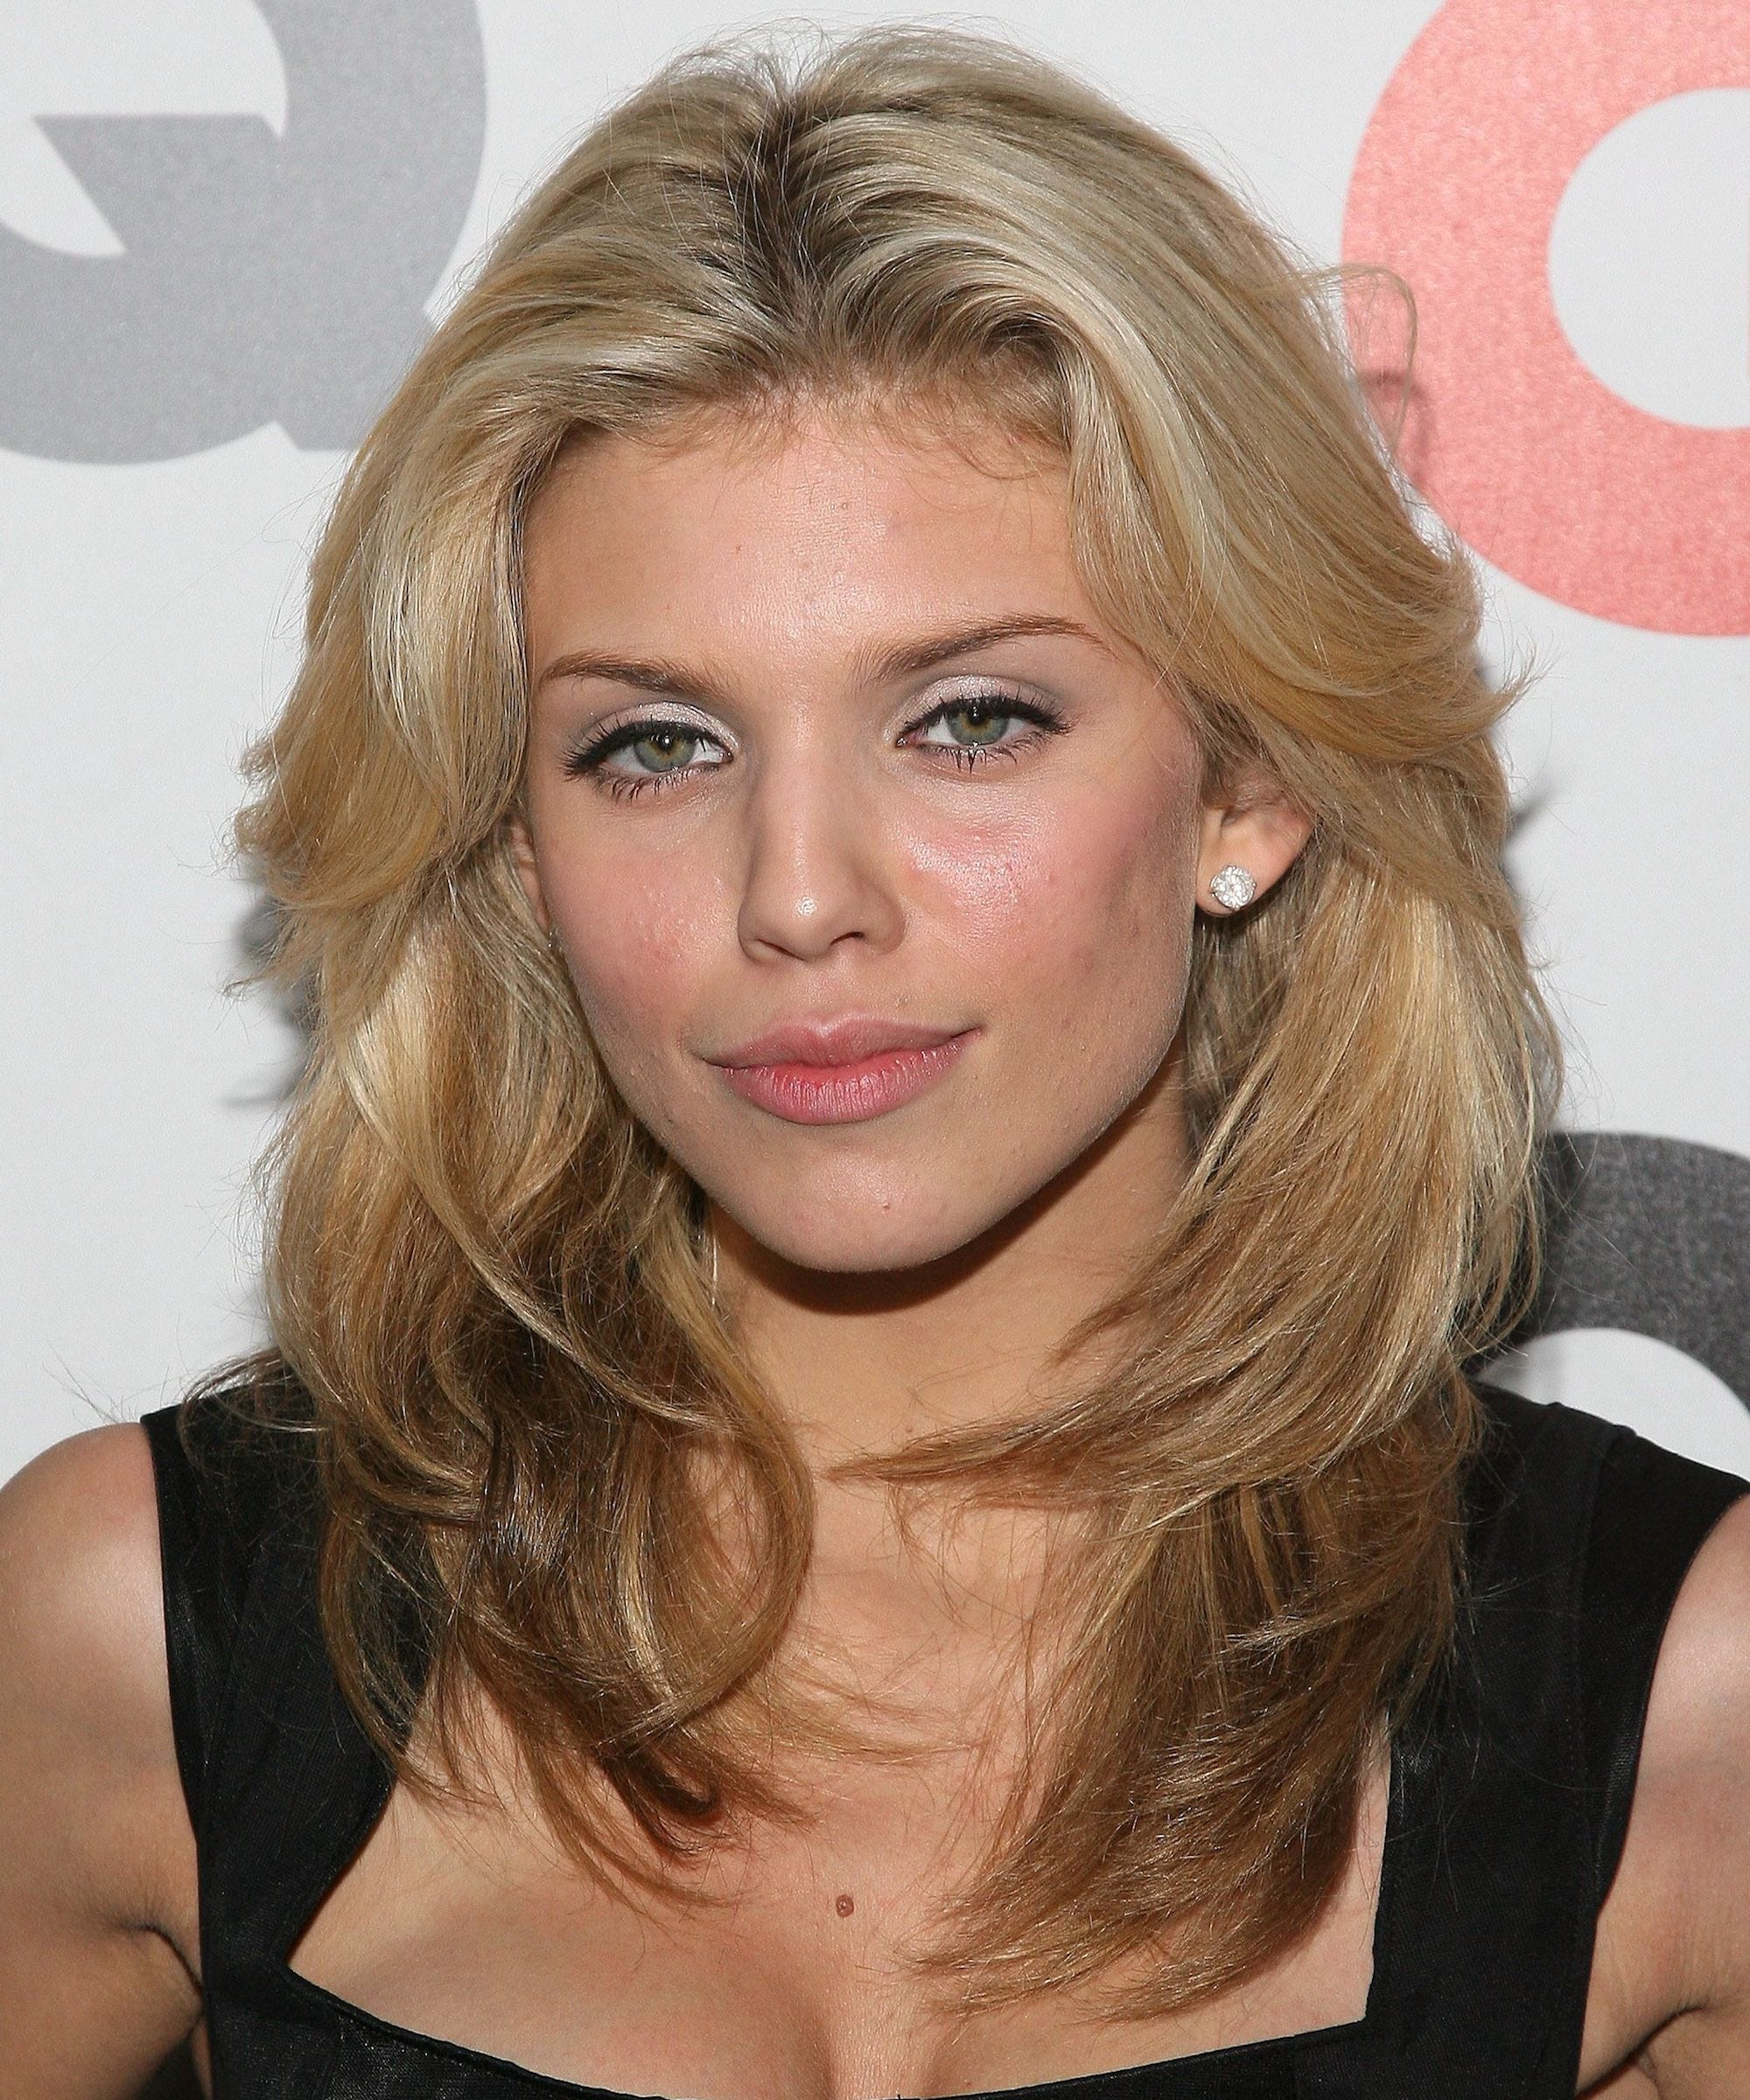 Photos AnnaLynne McCord nude (75 photos), Leaked